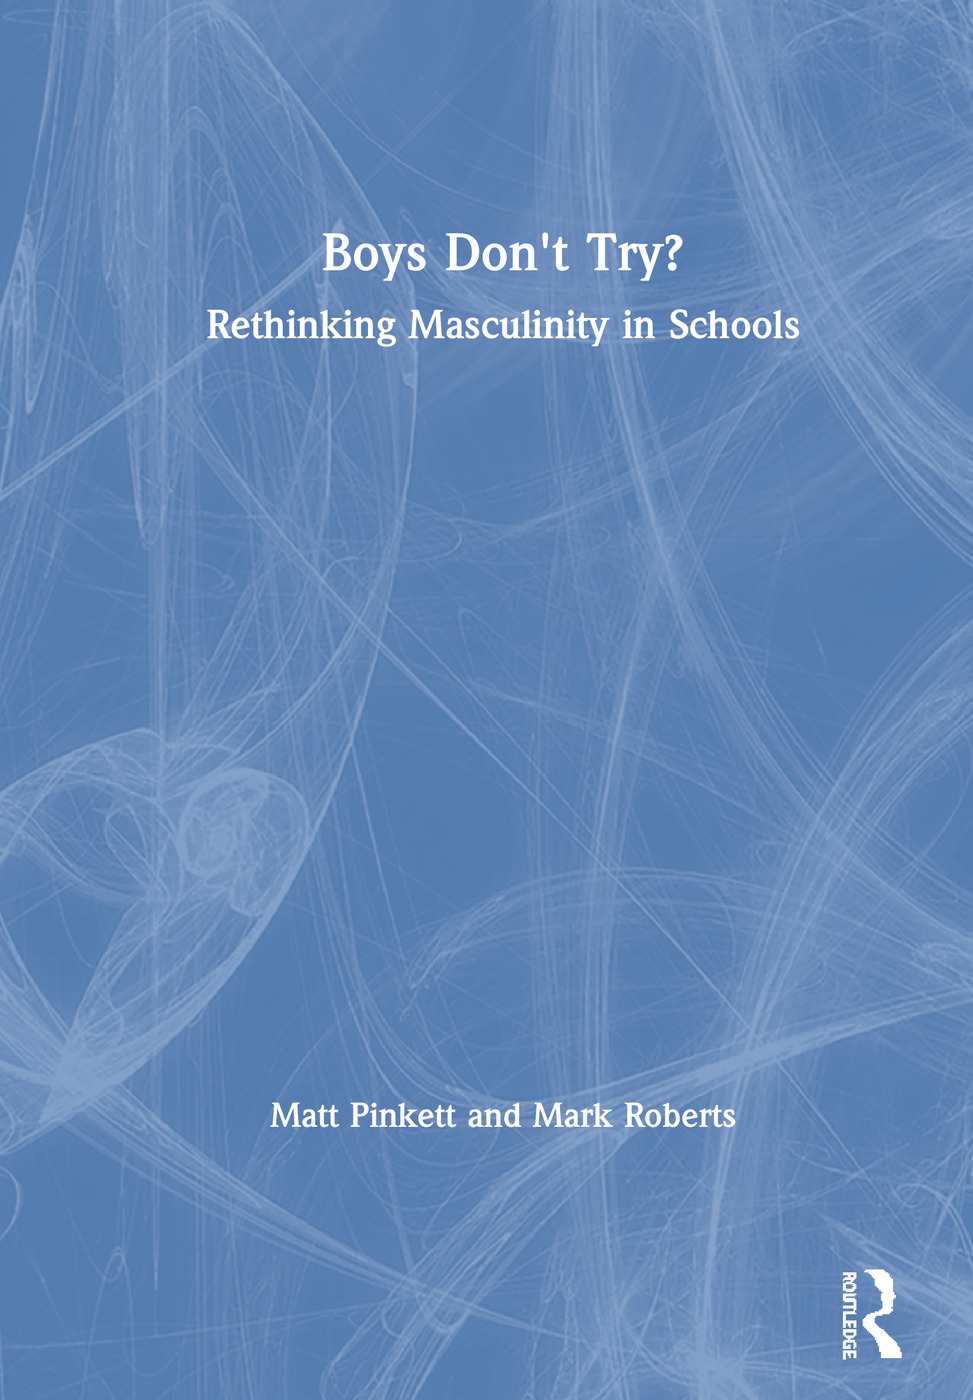 Boys Don't Try? Rethinking Masculinity in Schools book cover